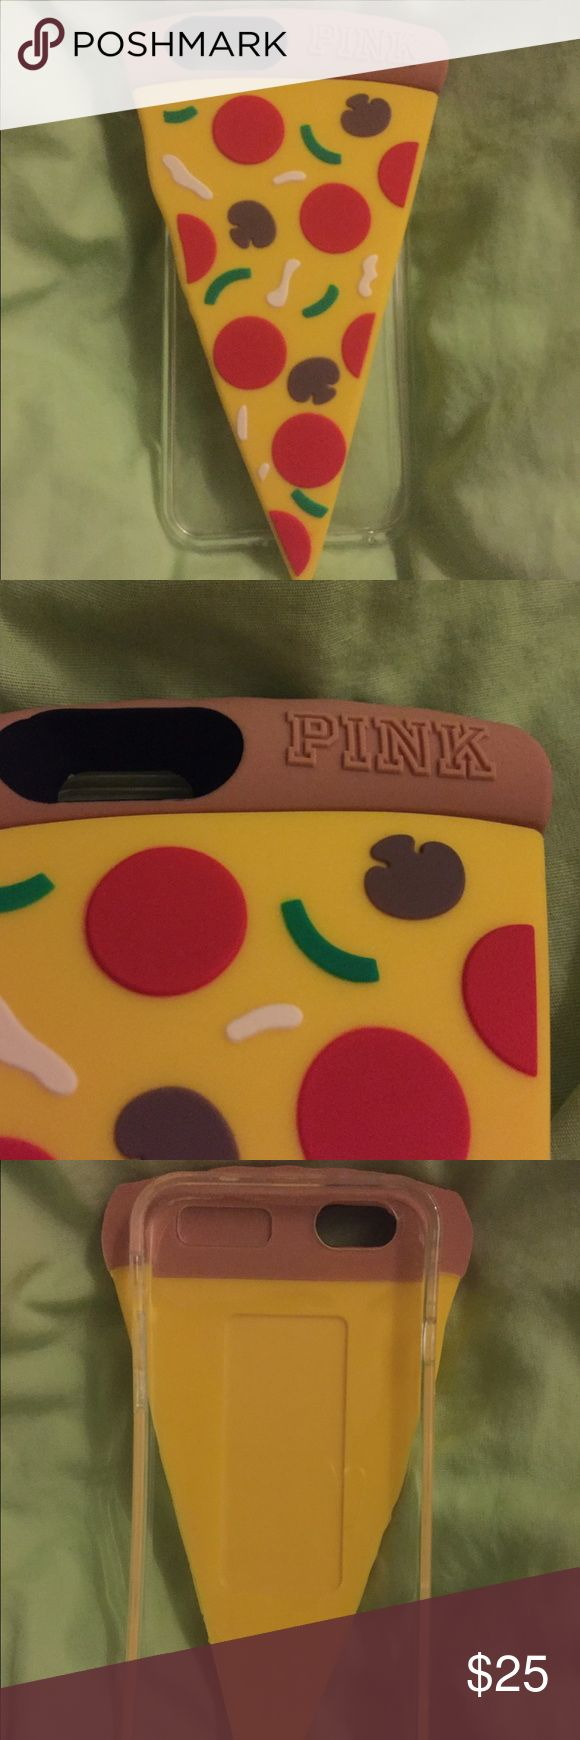 Victoria's Secret PINK pizza iPhone 6 case Brand new, never used. Made by Victoria's Secret PINK to fit the iPhone 6 or 6s! PINK Victoria's Secret Accessories Phone Cases